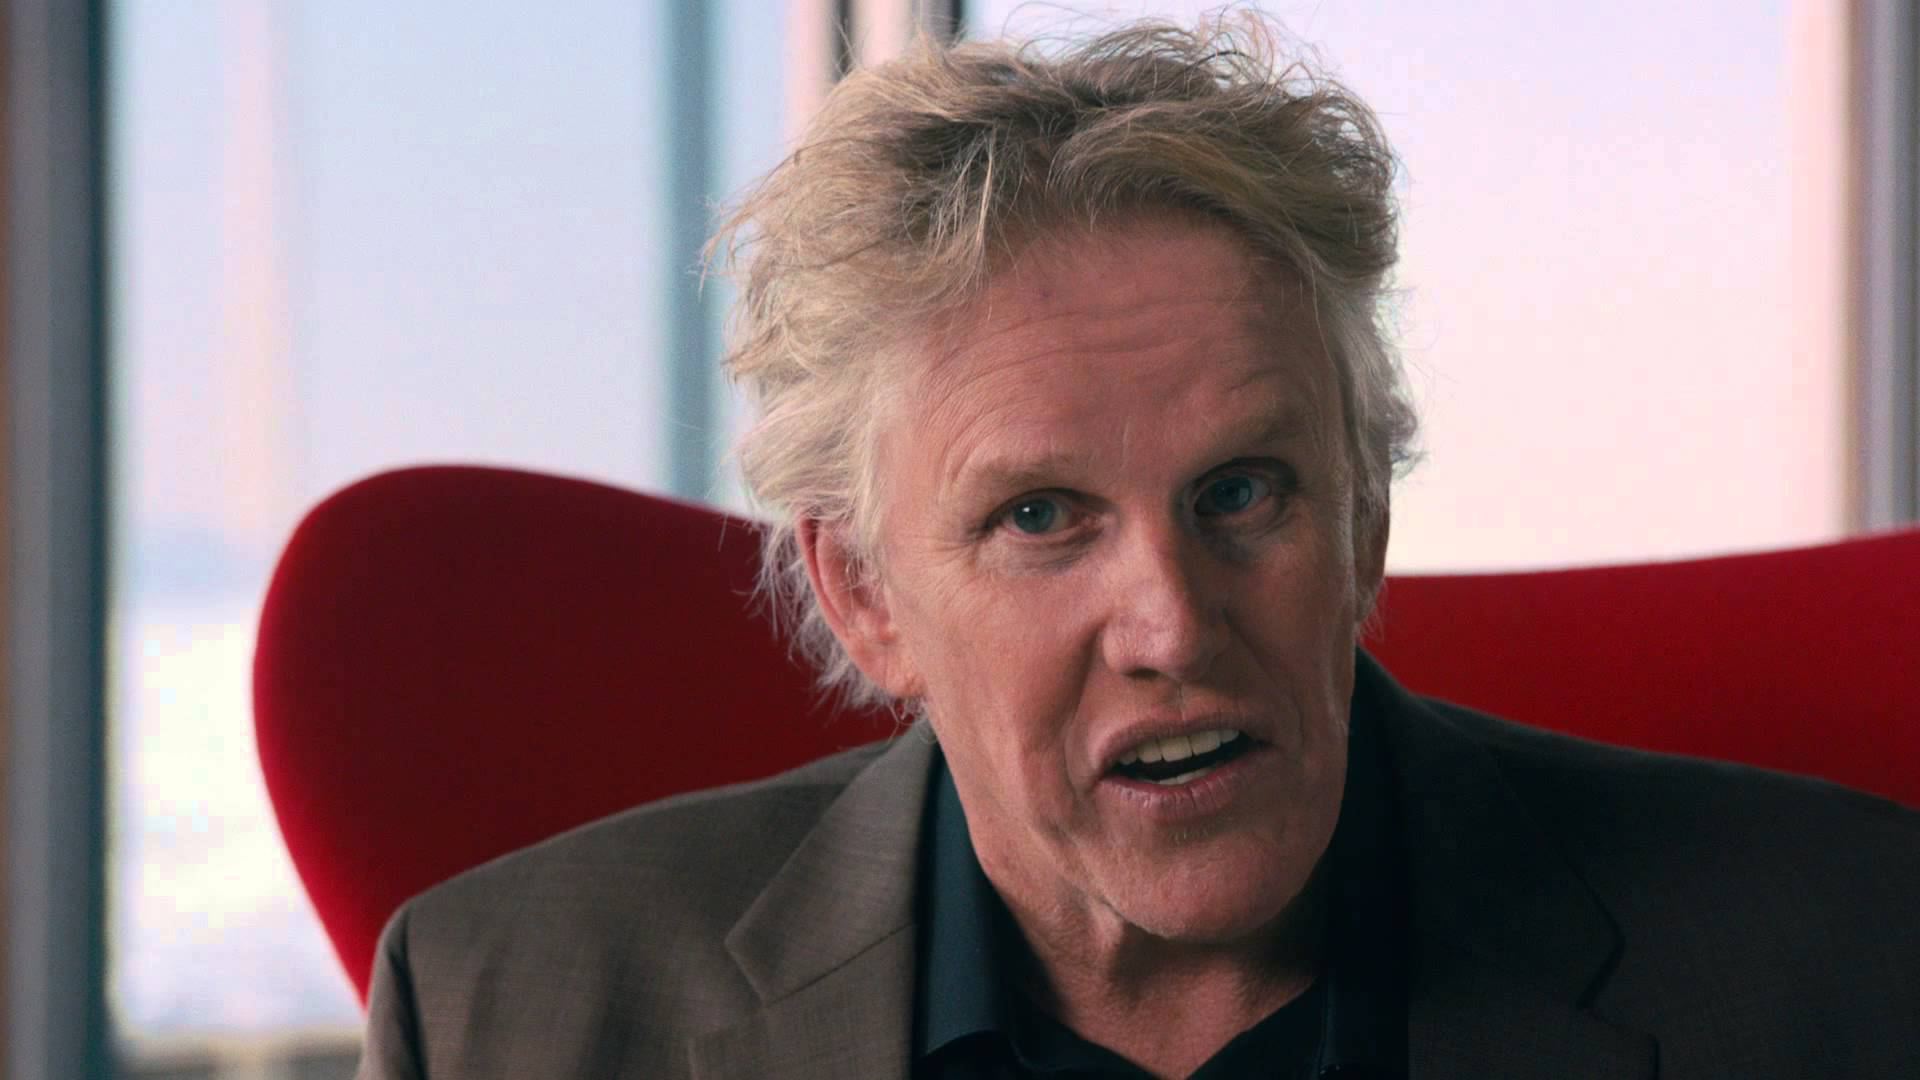 Gary Busey Wallpapers hd